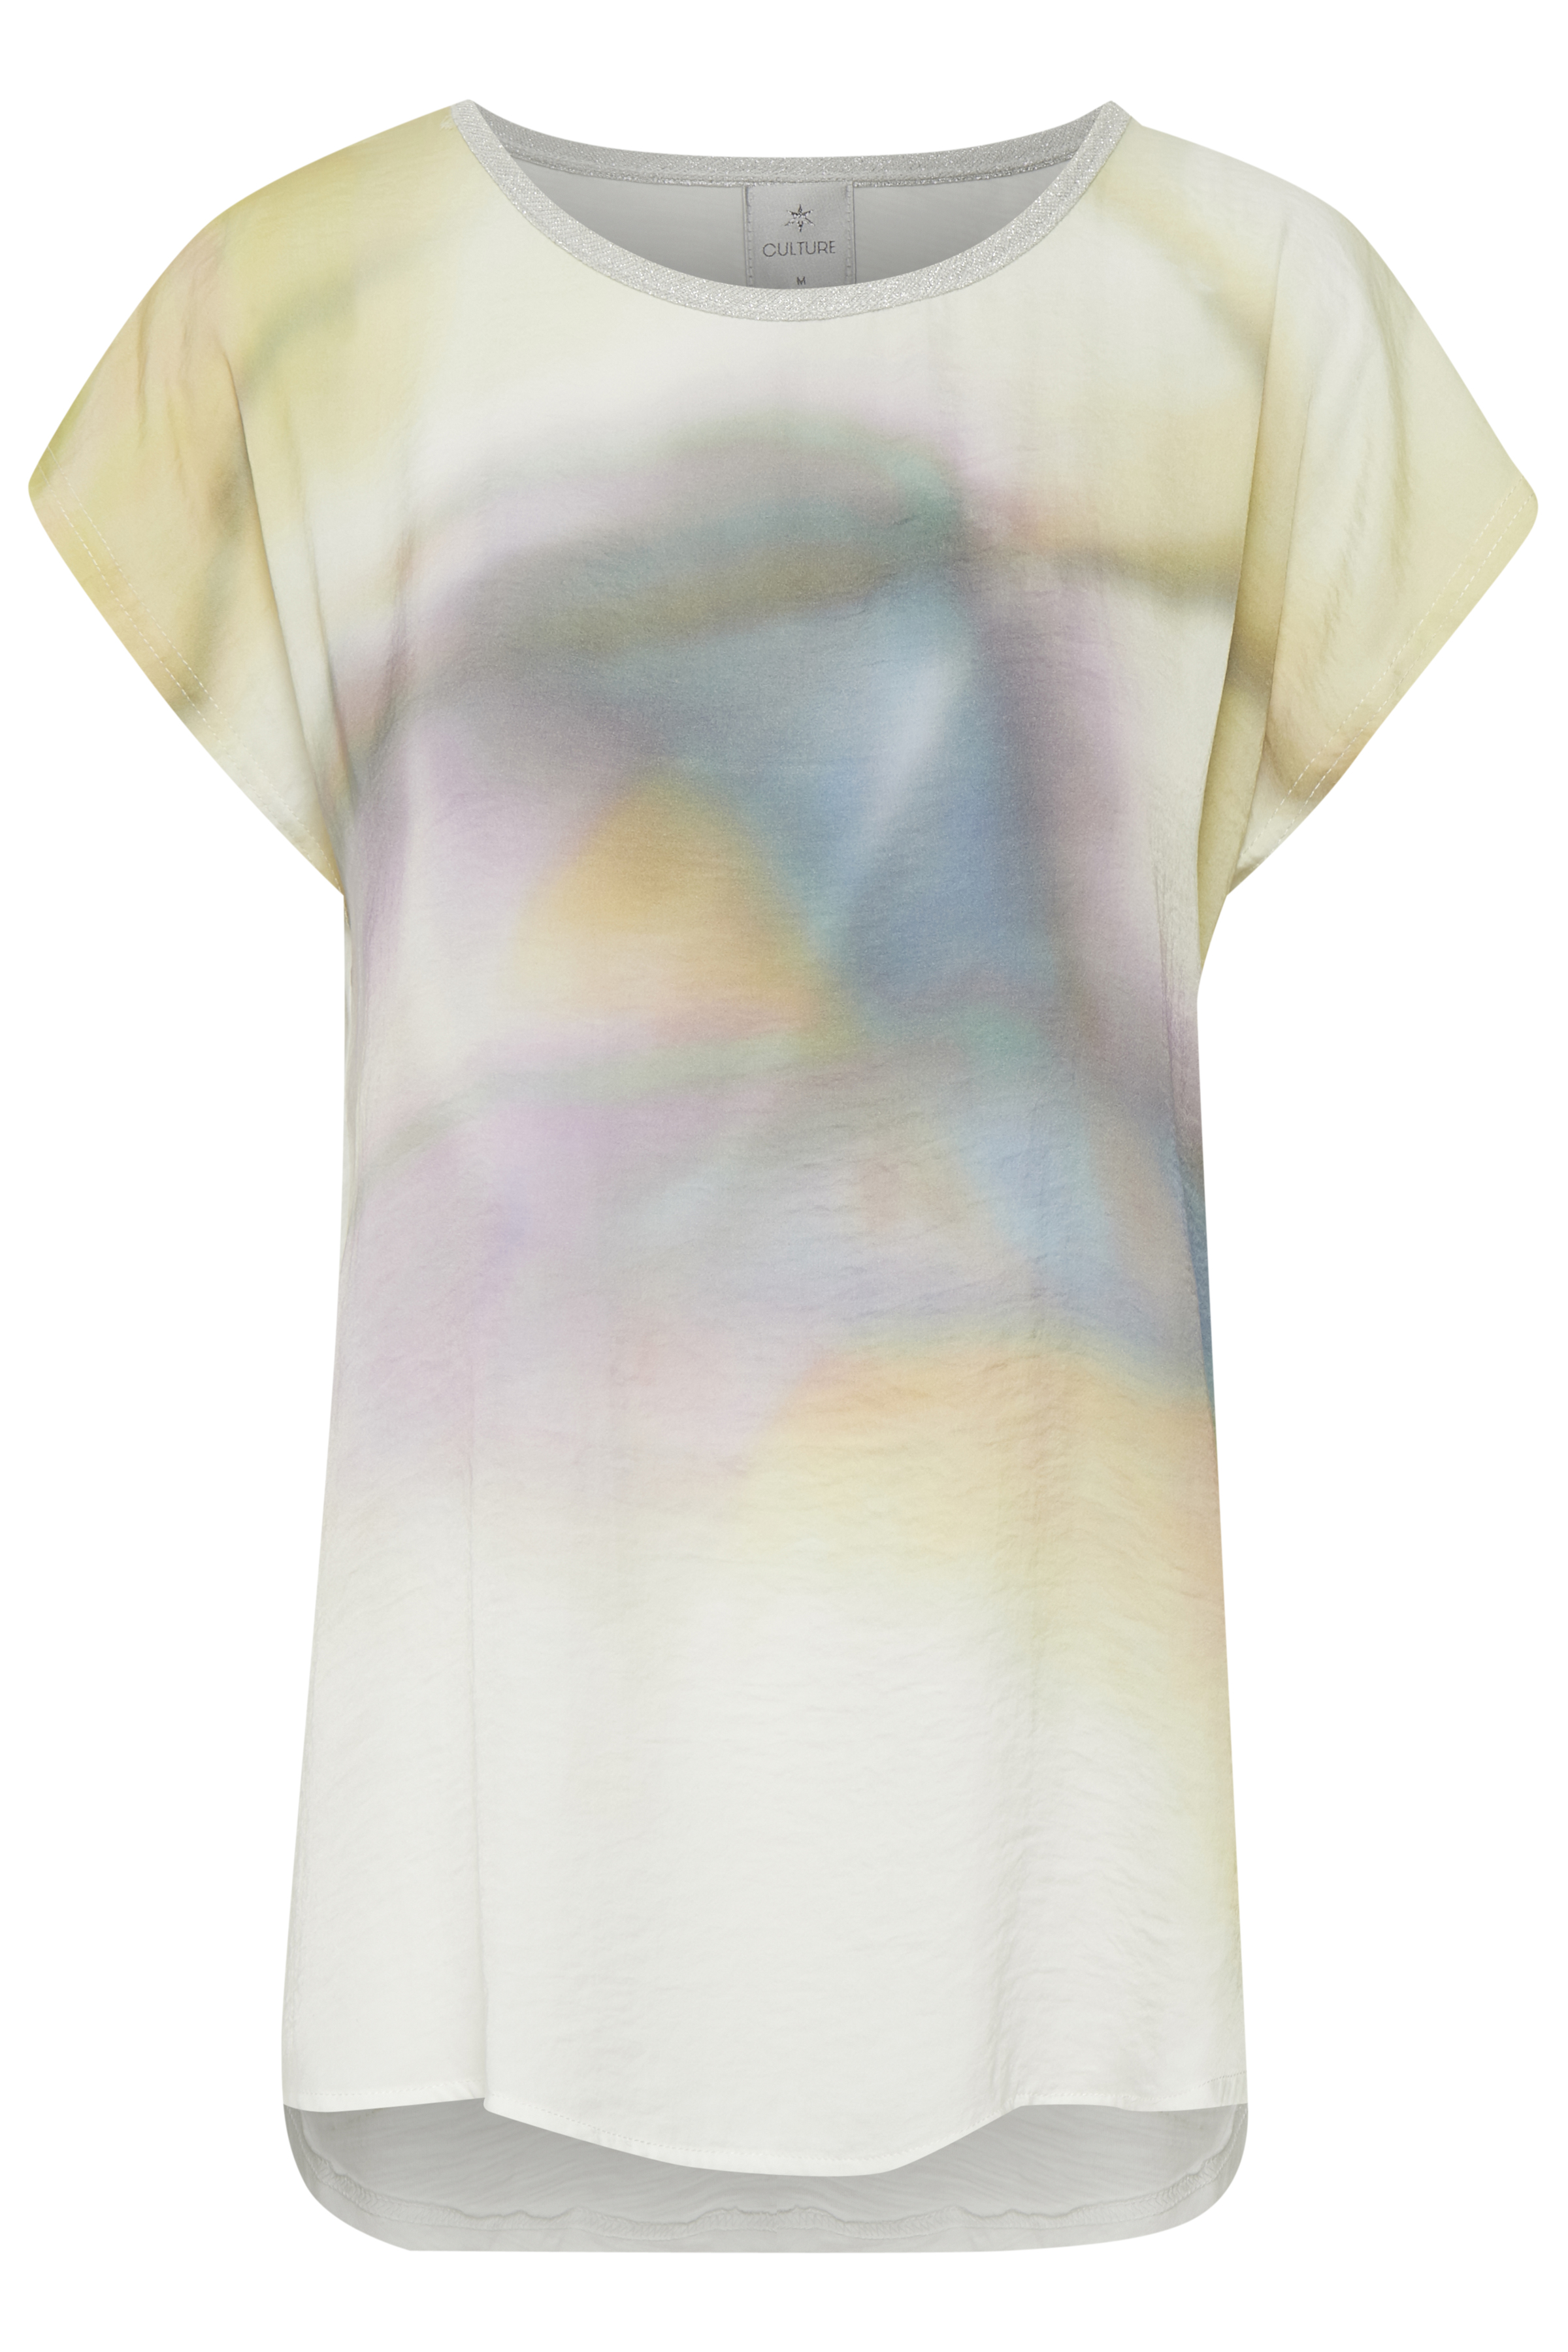 Image of Culture Dame Bluse - Off-white